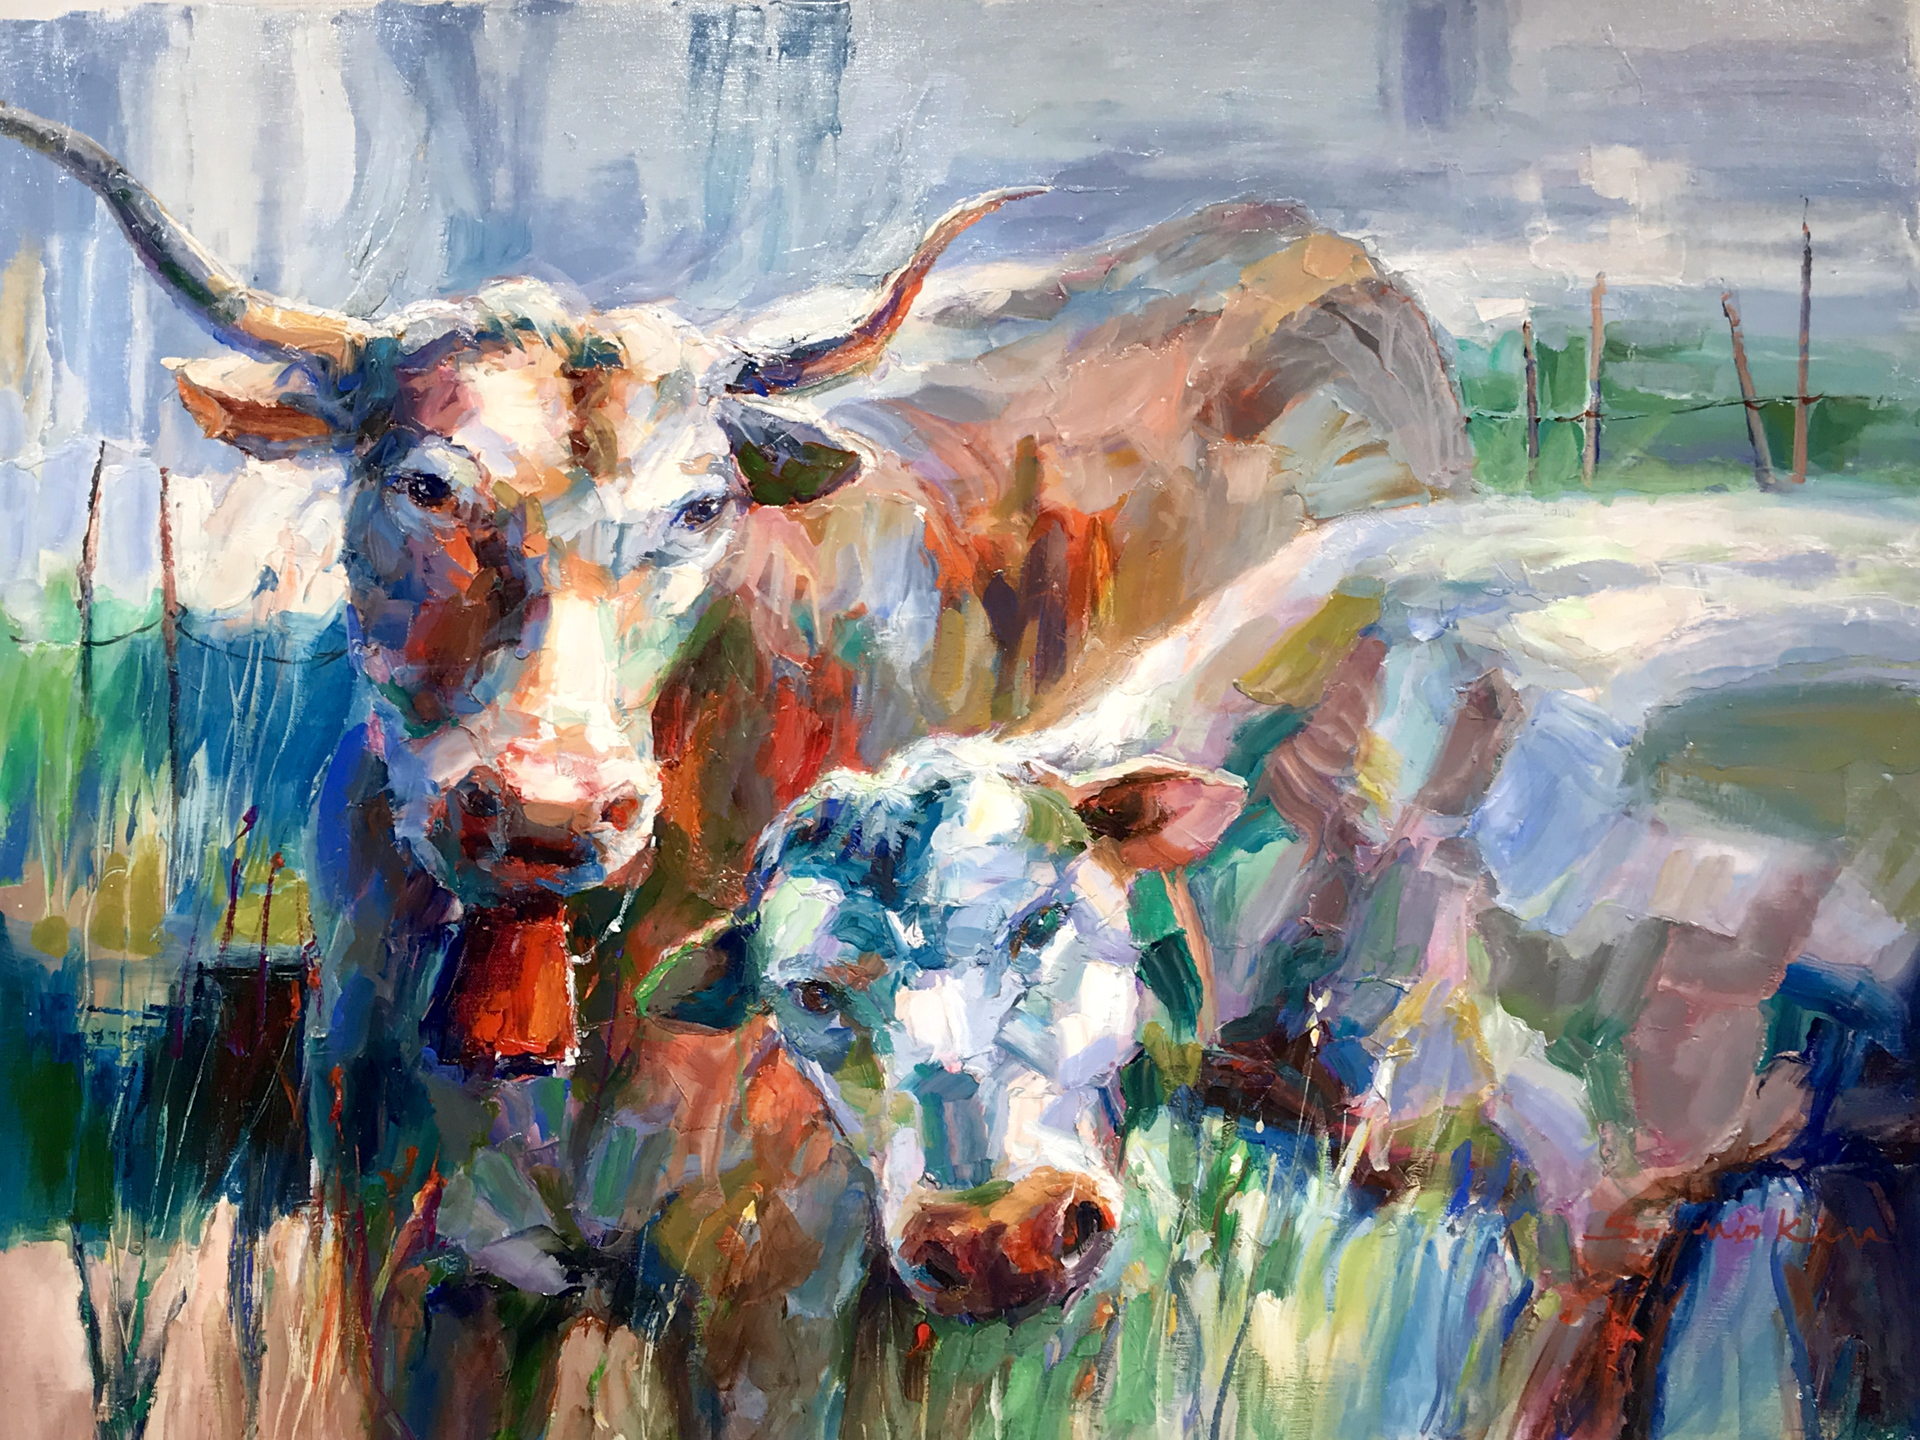 LONGHORN CATTLE by SUN MIN KIM